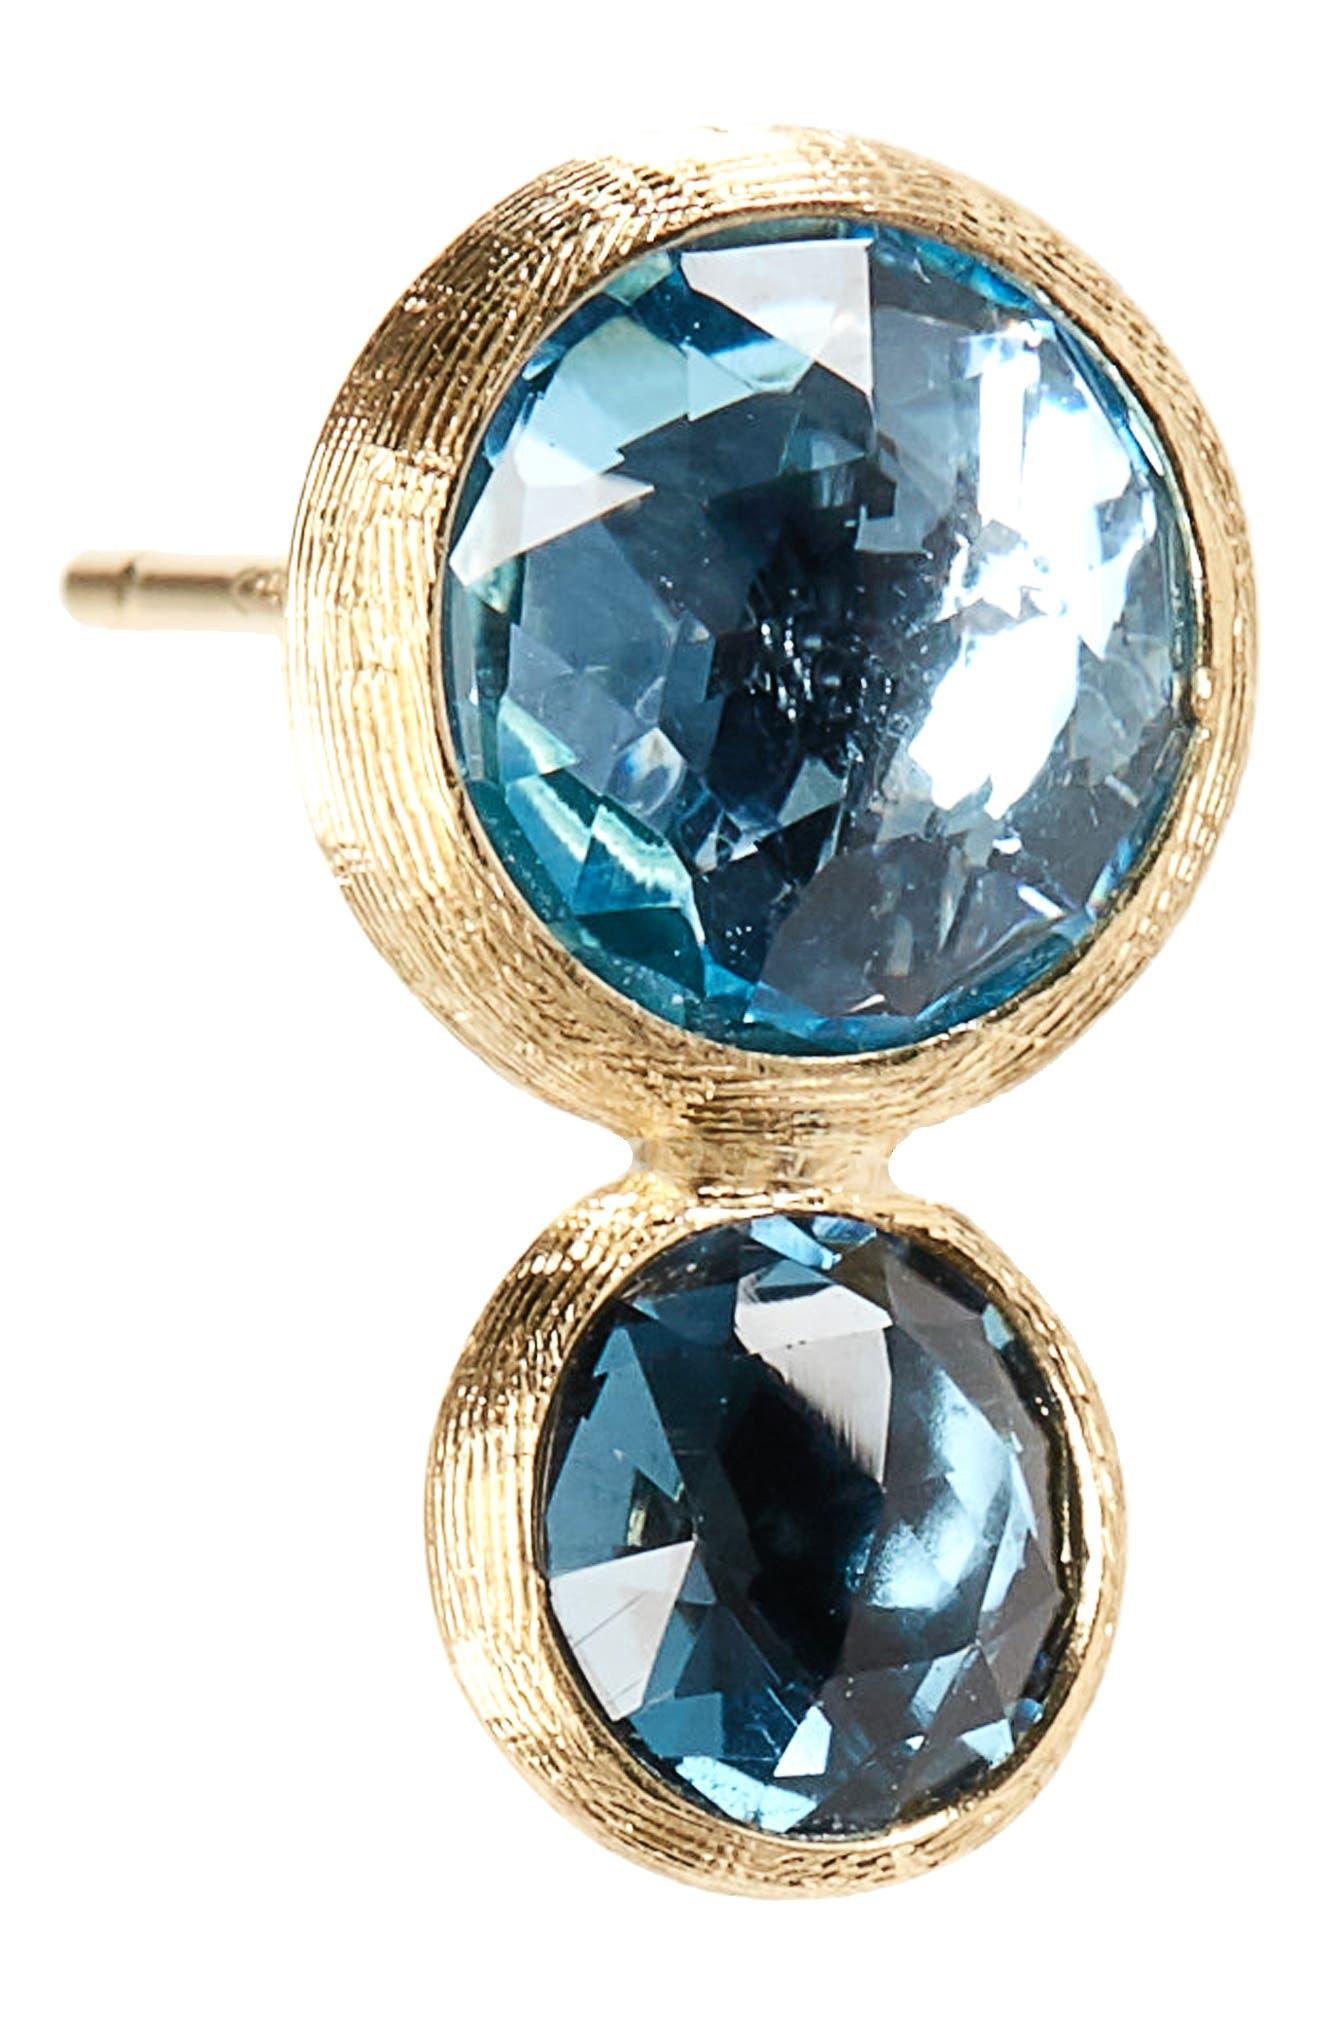 Jaipur 2-Stone Blue Topaz Stud Earrings,                             Alternate thumbnail 5, color,                             Yellow Gold London/ Swiss Blue